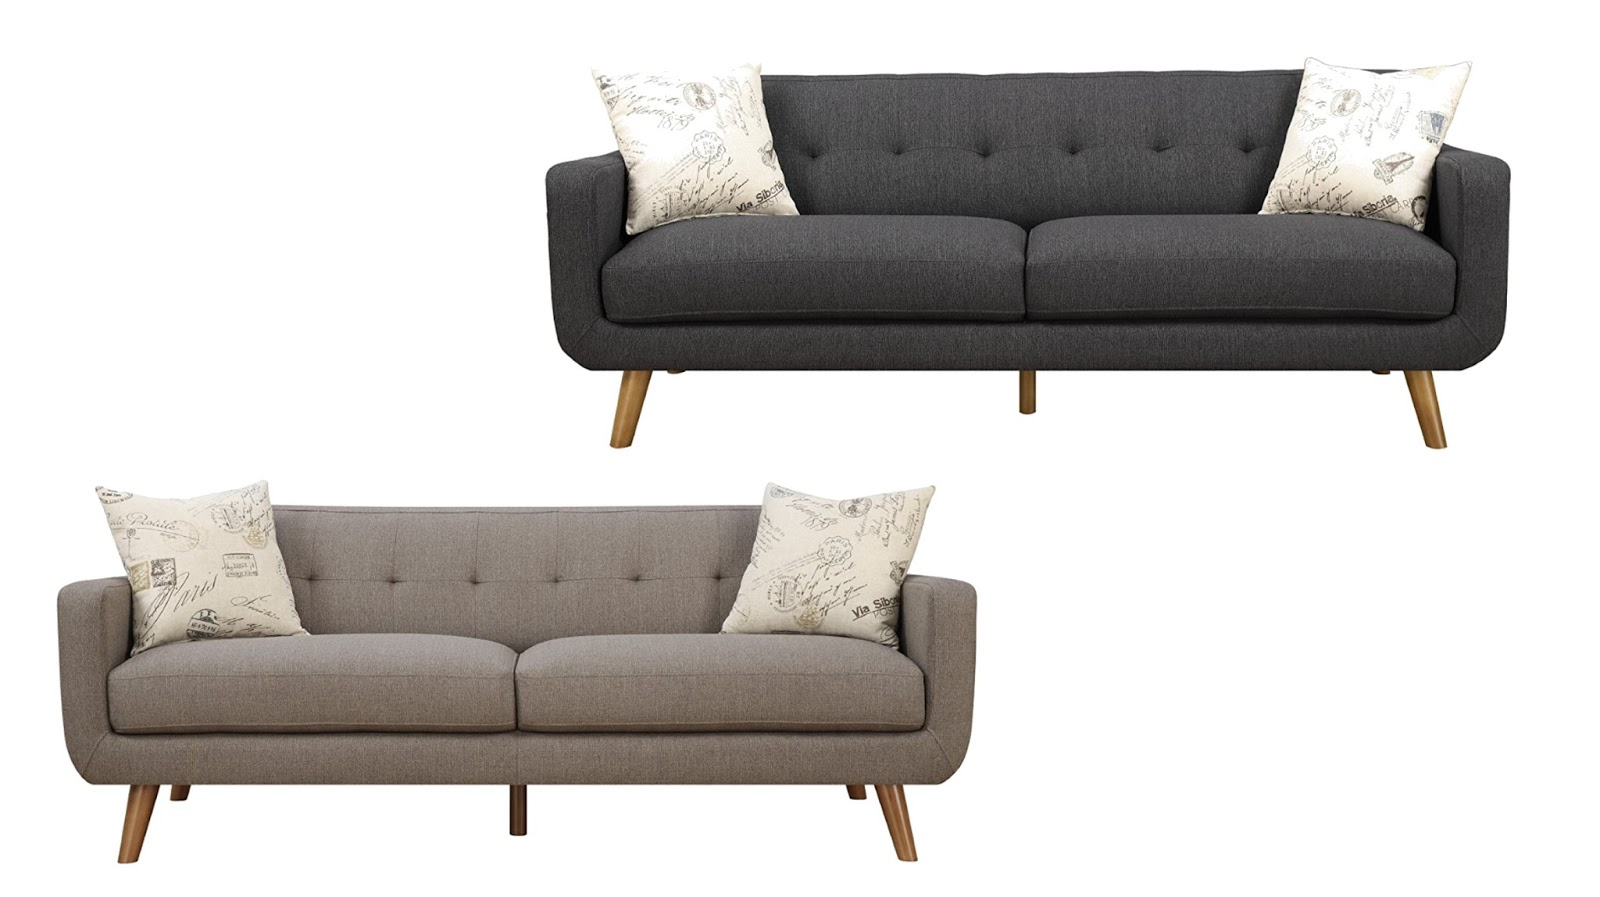 Cheap Mid Century Sofas Sure Fit Deluxe Soft Suede Pet Throw Sofa Cover Sew At Home Mummy Affordable Style